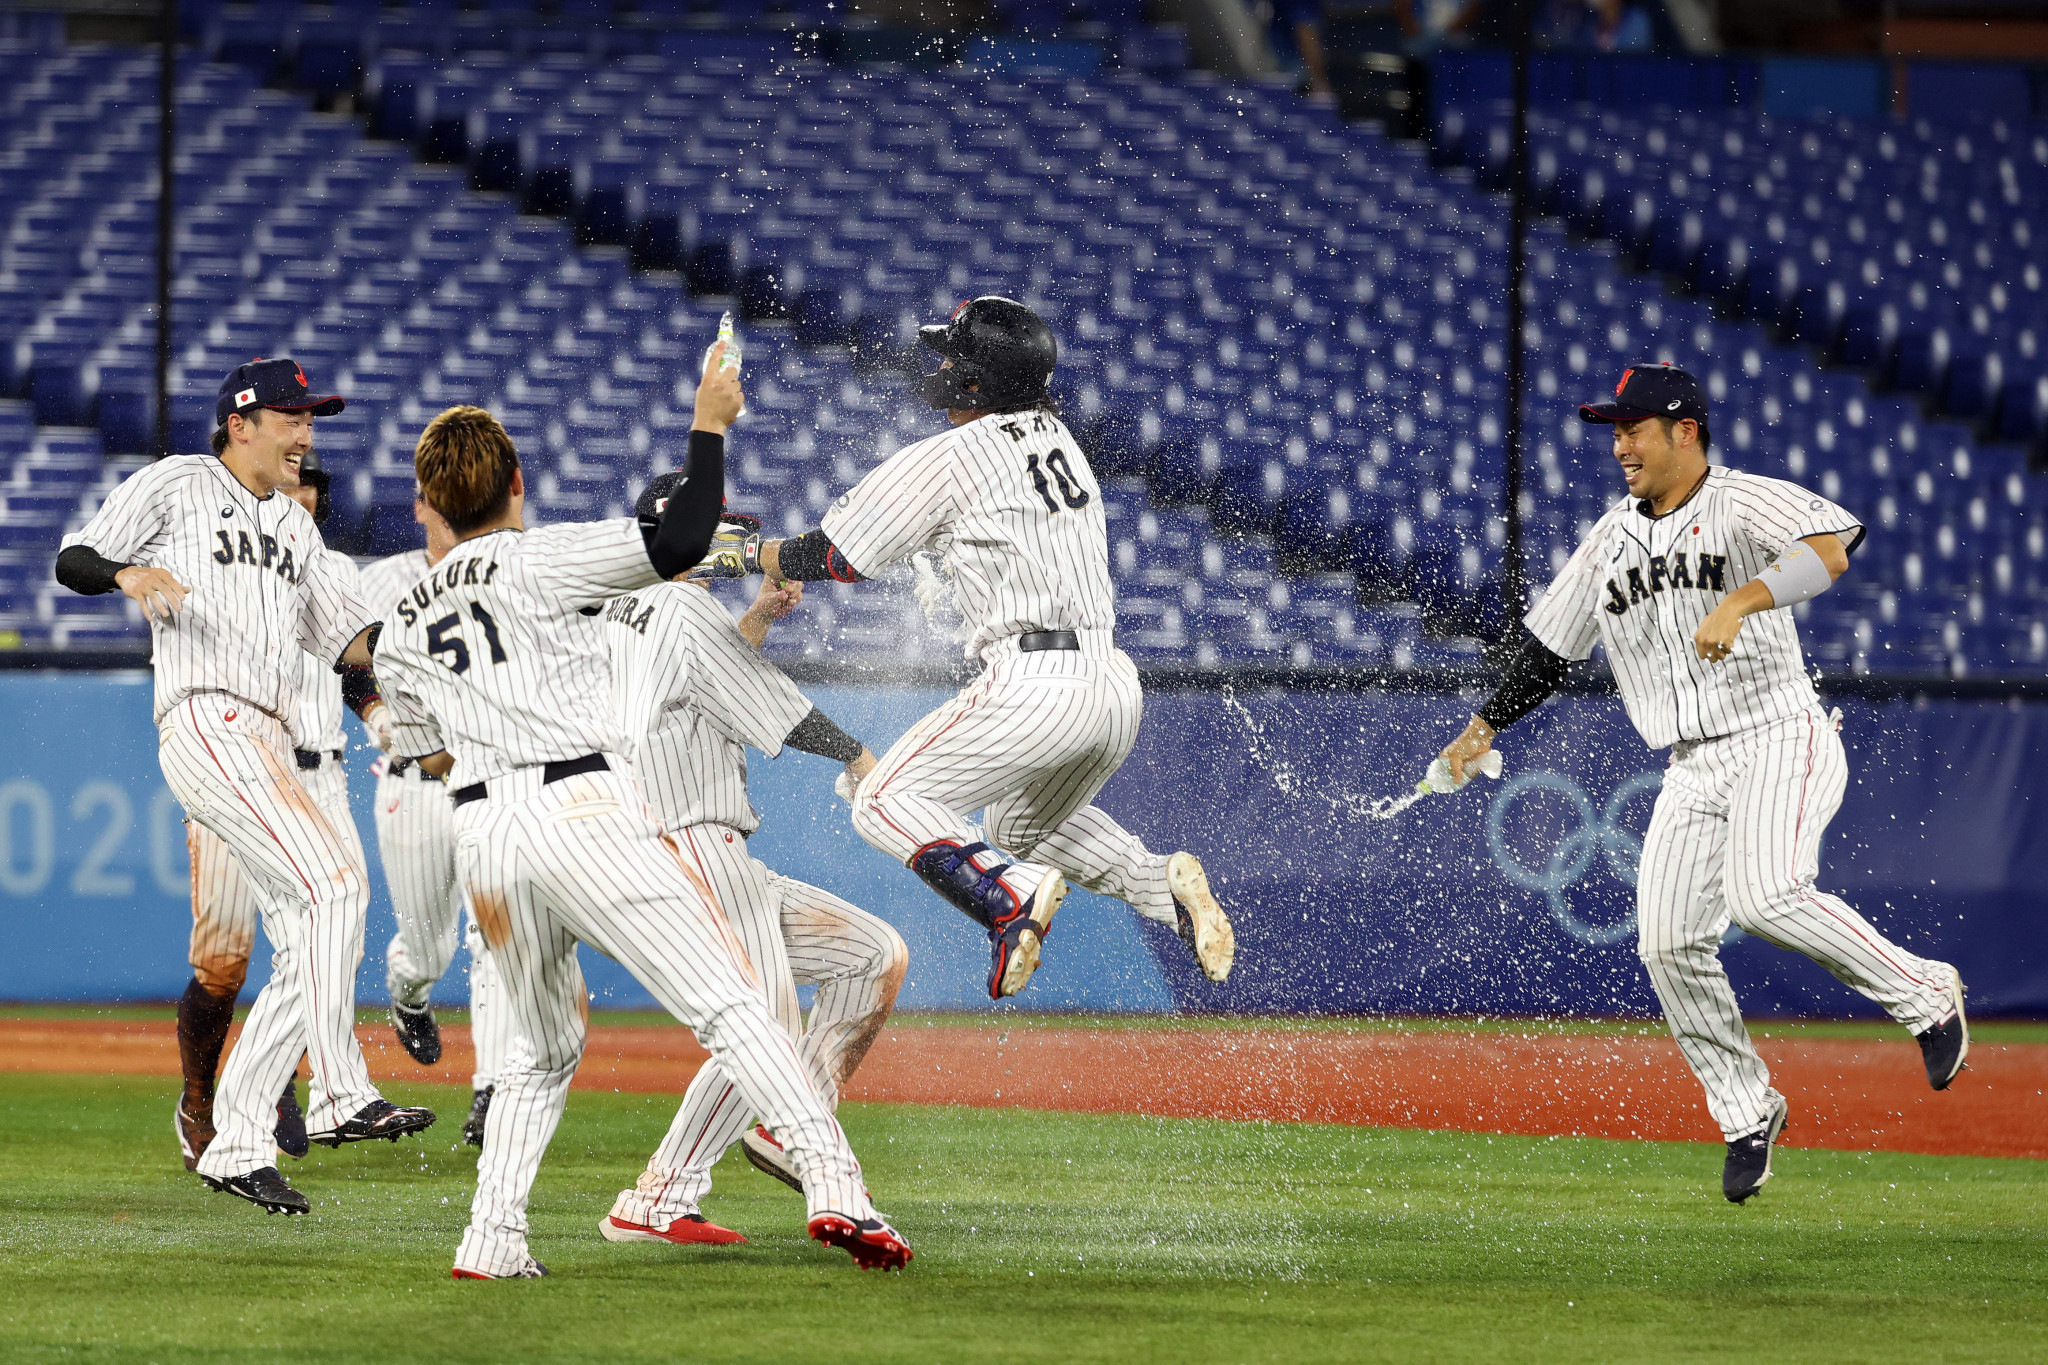 Japan staged a stirring comeback to beat the United States and reach the first baseball semi-final, rallying in the bottom of the ninth to take the game to extra innings and then winning when Takuya Kai drove in a run in the 10th ©Getty Images